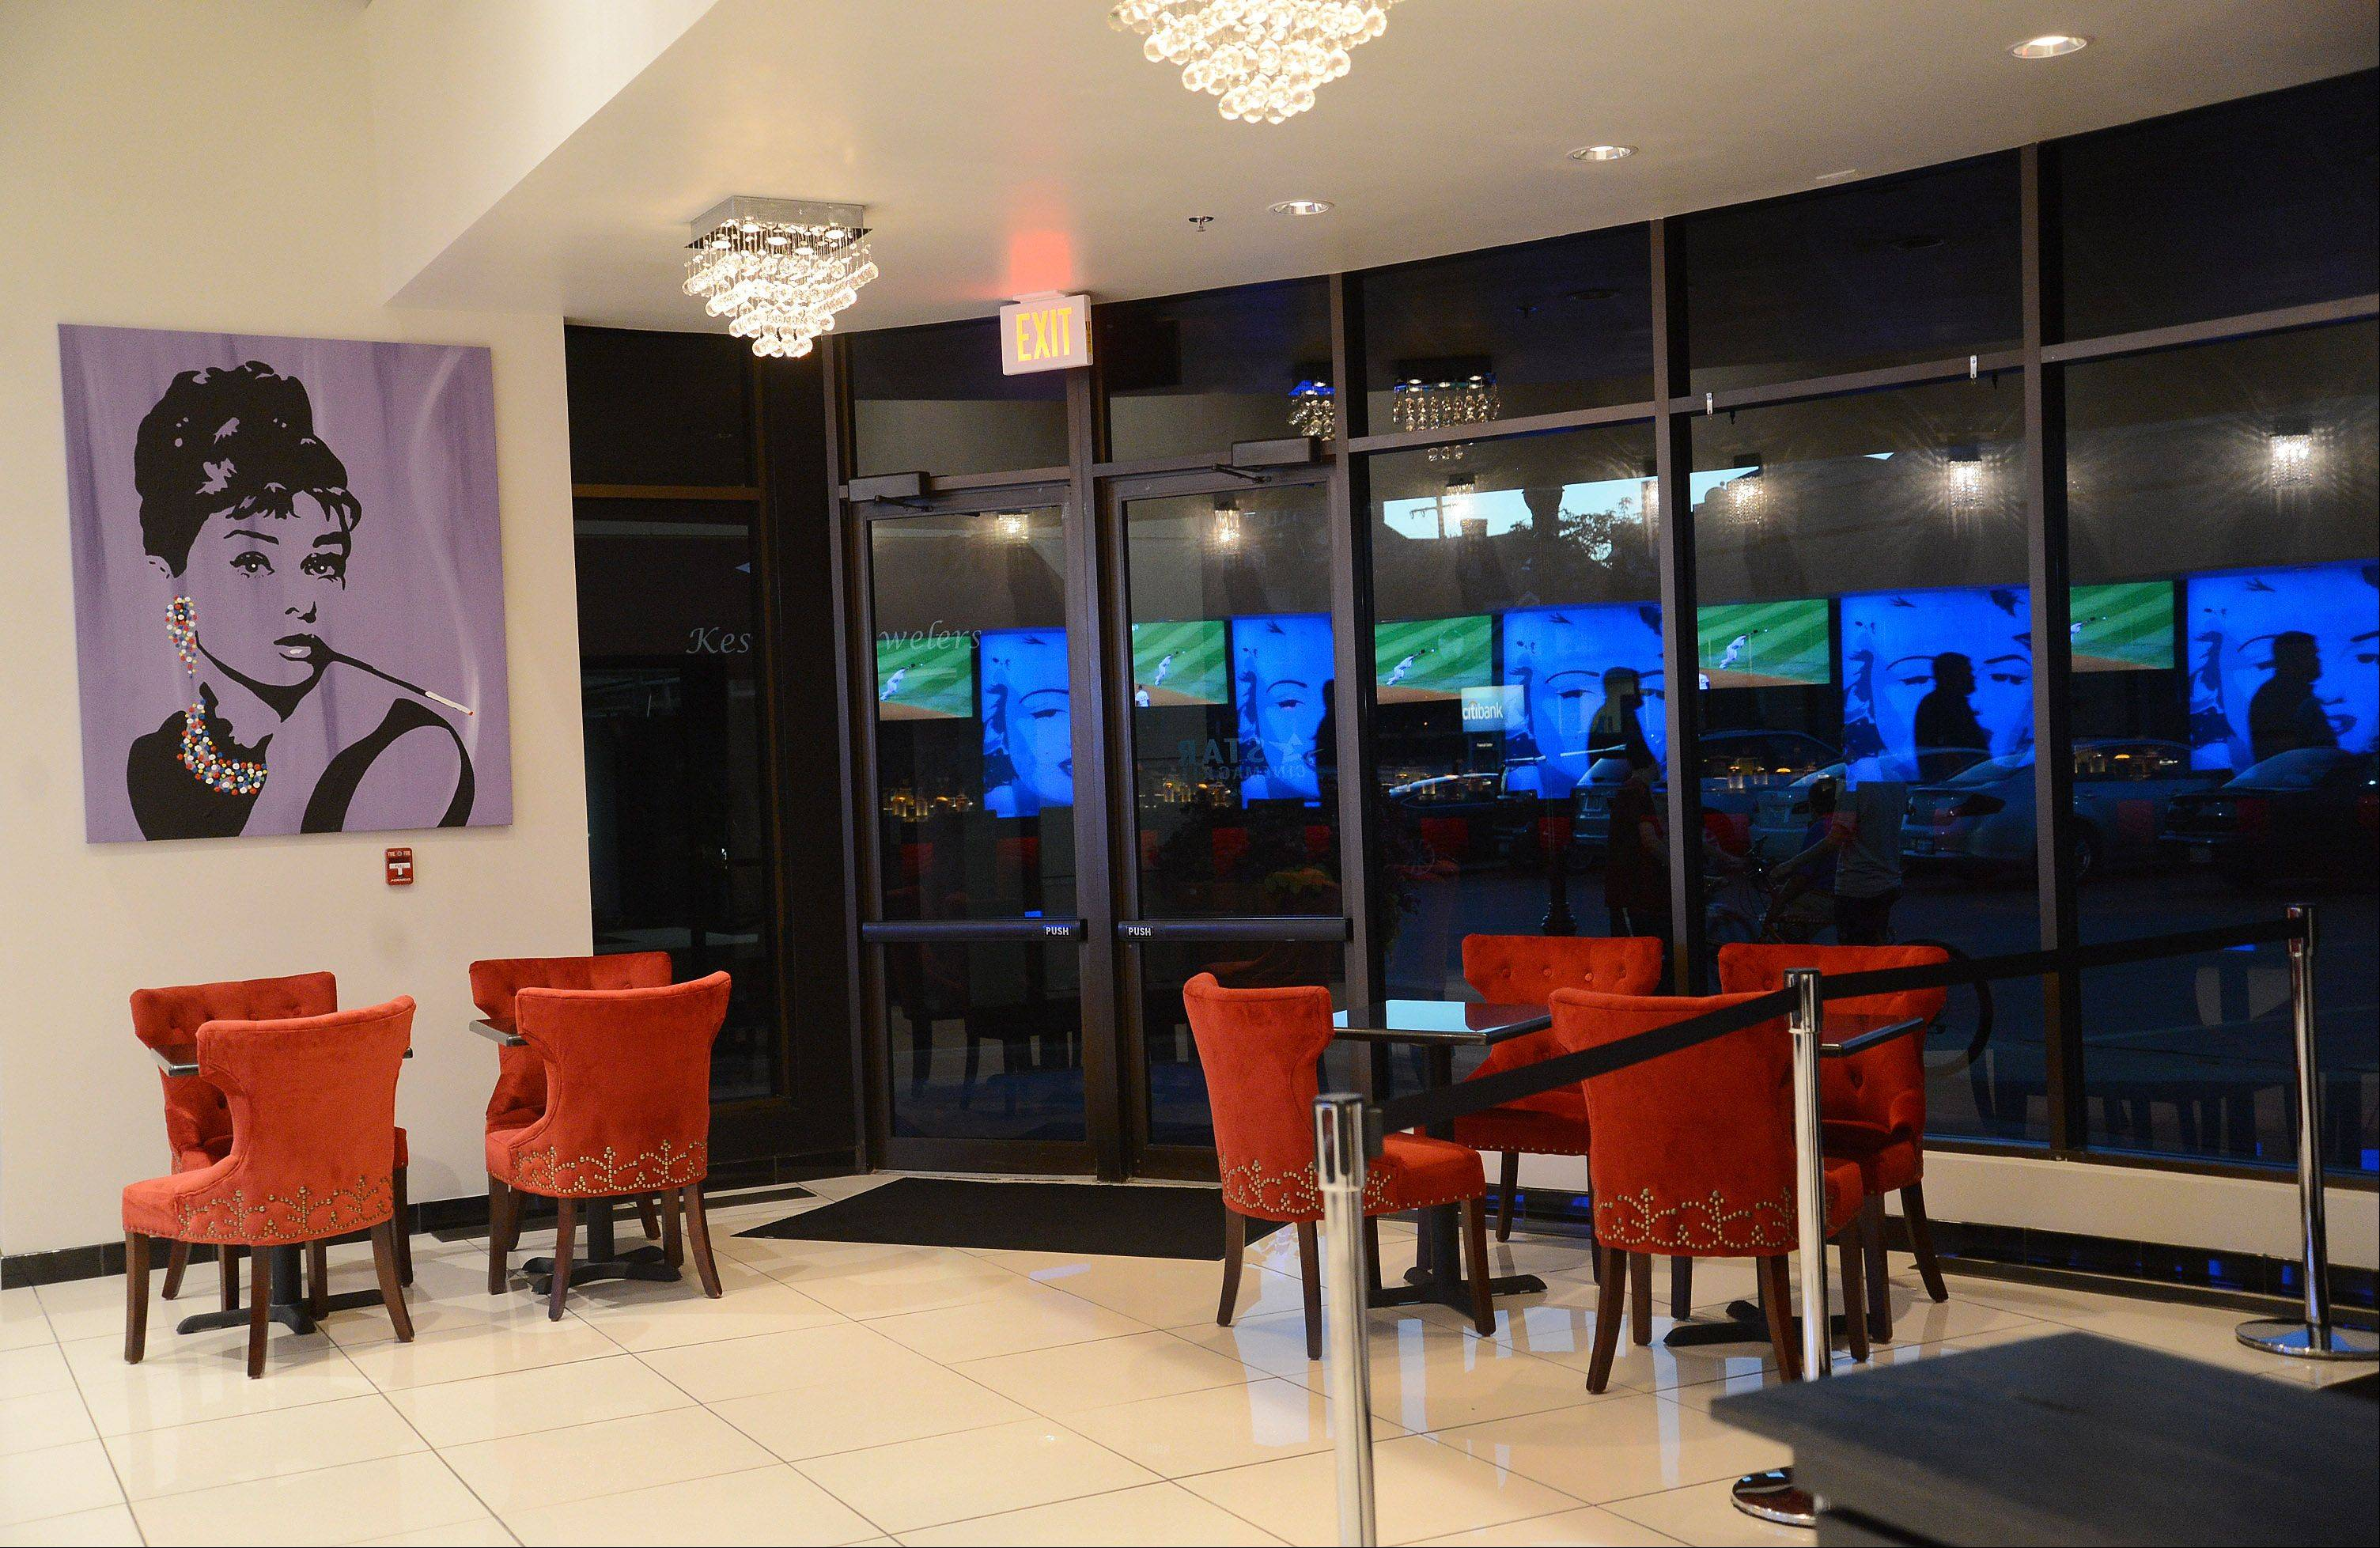 The revamped lobby at the Star Cinema Grill features plush seating and tables for sharing drinks and appetizers before or after a show.